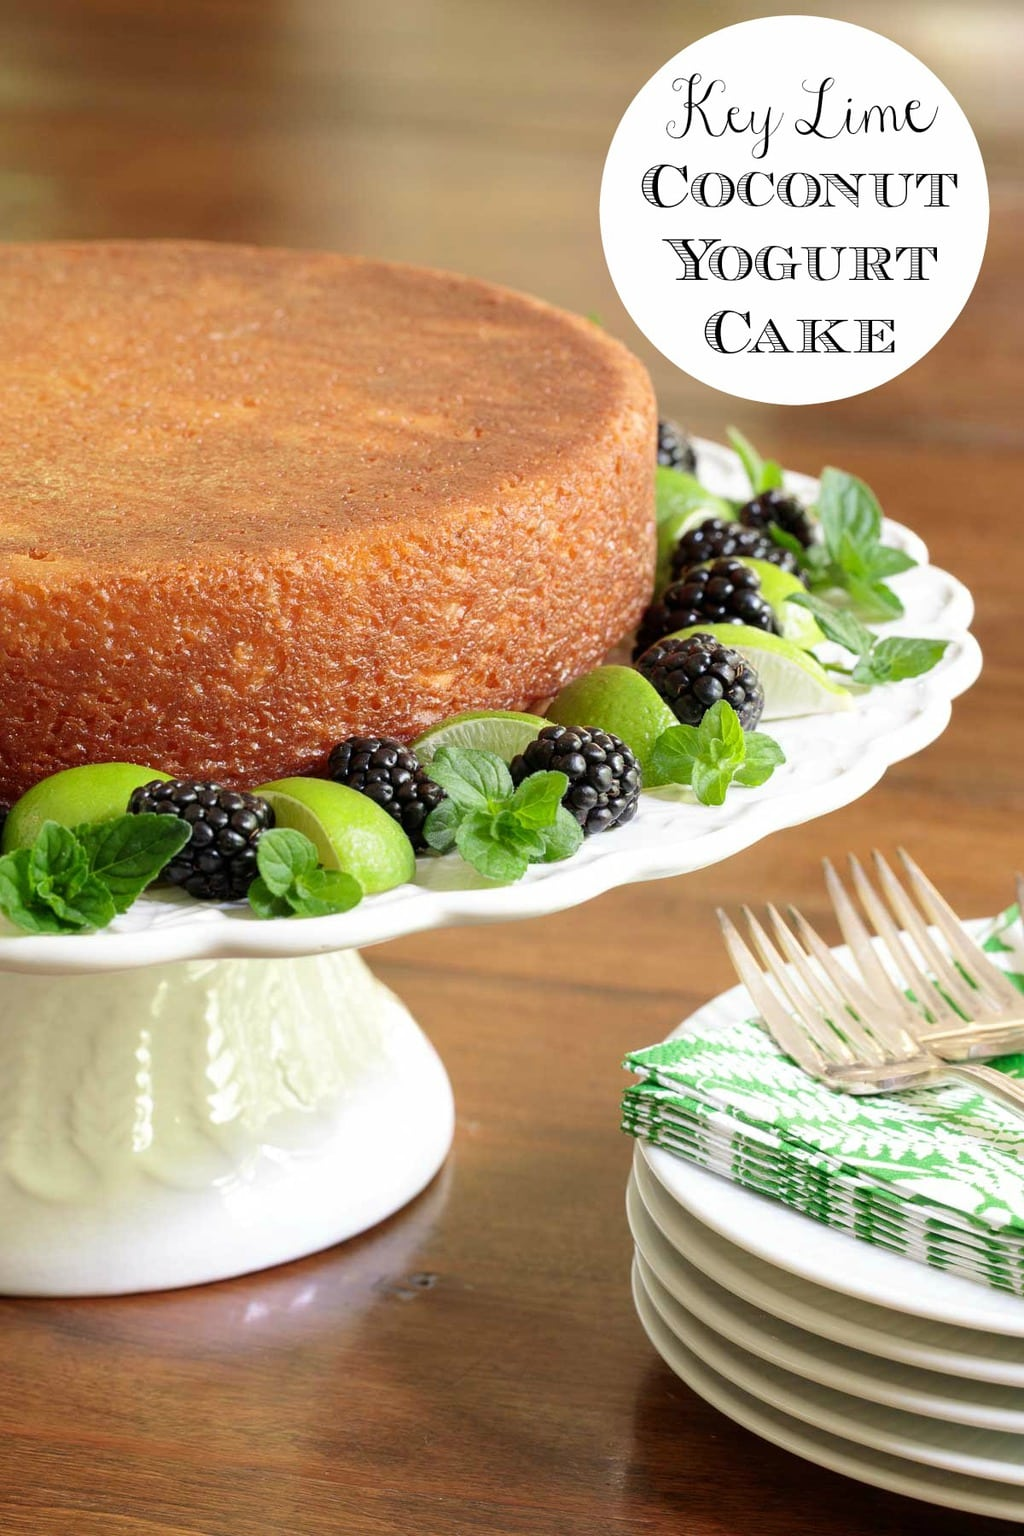 Super moist with a tender crumb this one-bowl, no-mixer Key Lime Coconut Cake has a crisp candy-like lime glaze that\'s brushed on after it\'s baked. #yogurtcake, #keylimecake, #onebowlcake, #nomixercake, #easydessert